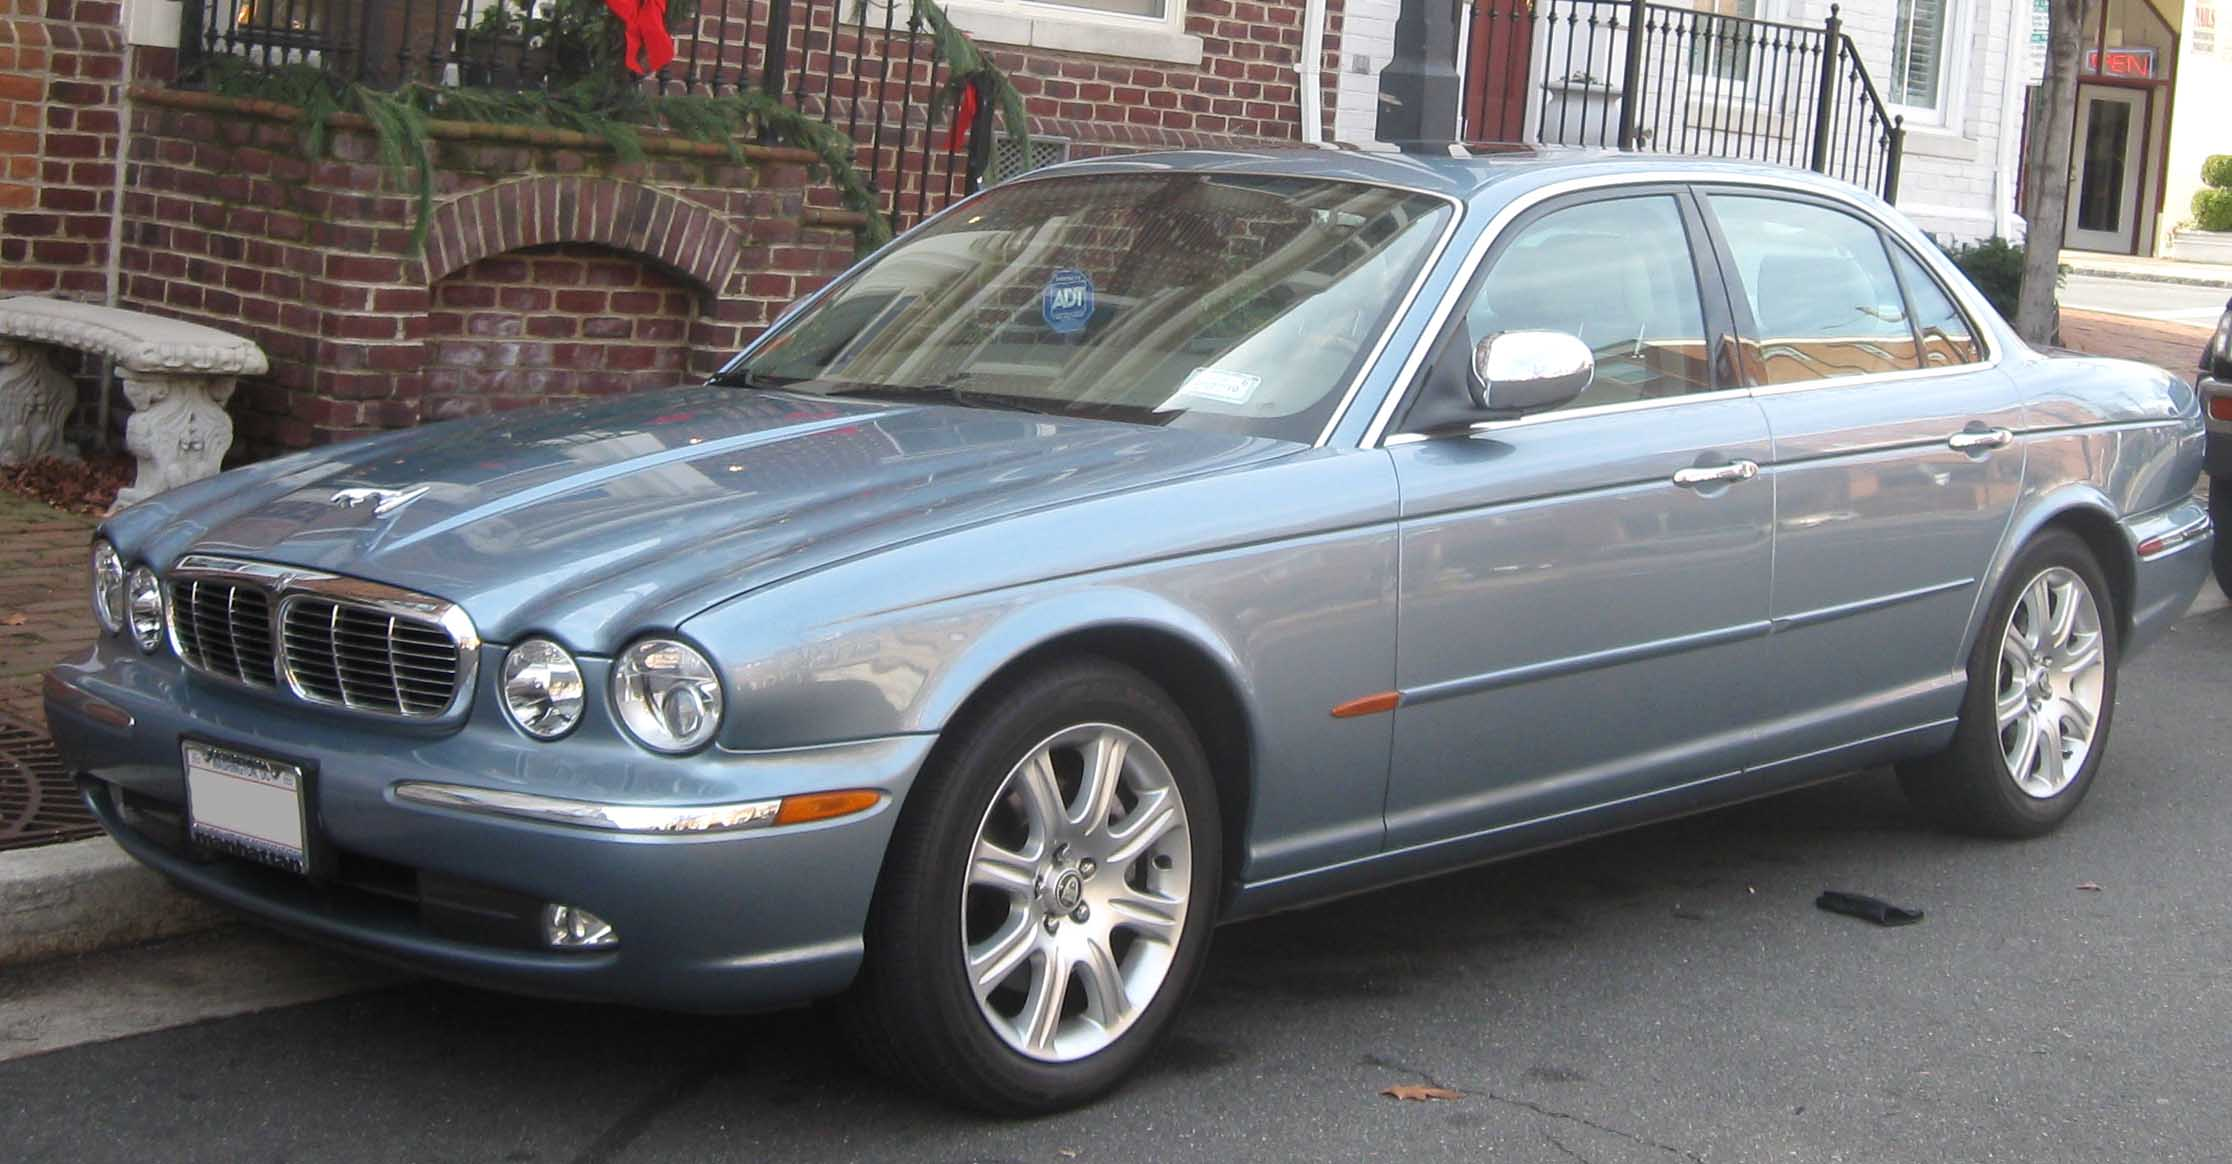 2007 Jaguar Xj-series #11